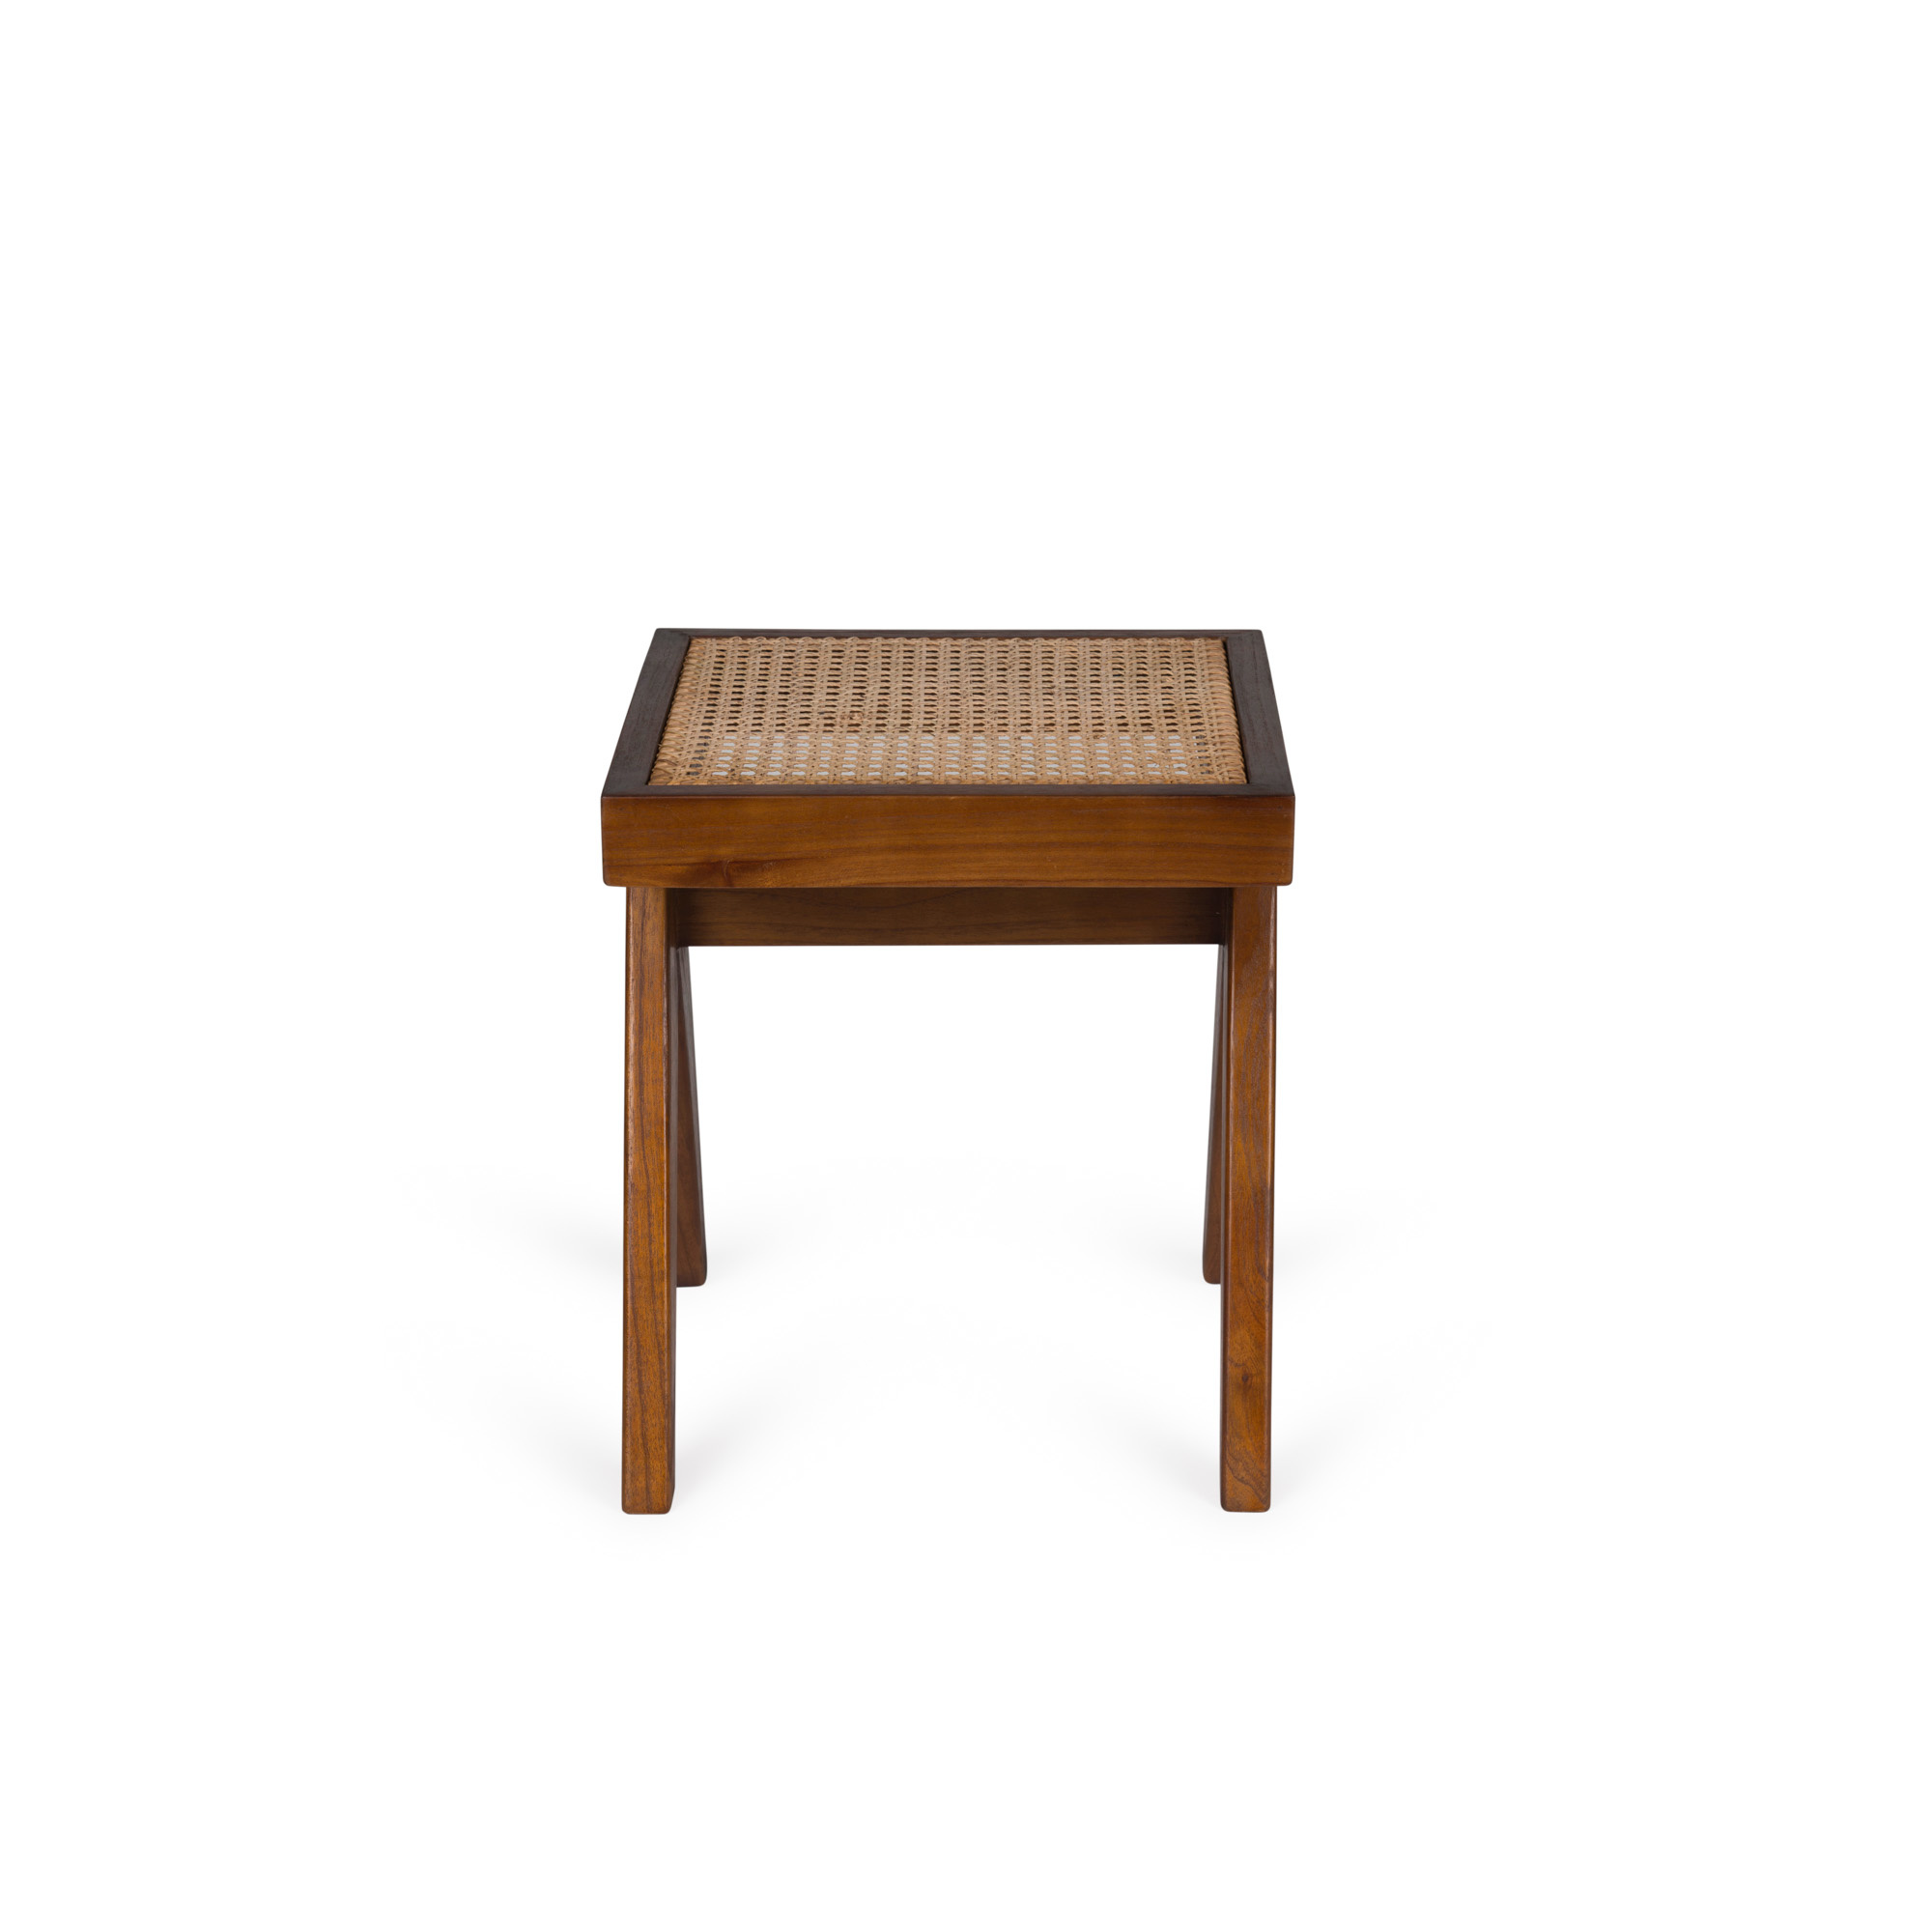 Bench / B.T.H. Flats 1 - Darkened Teak-3